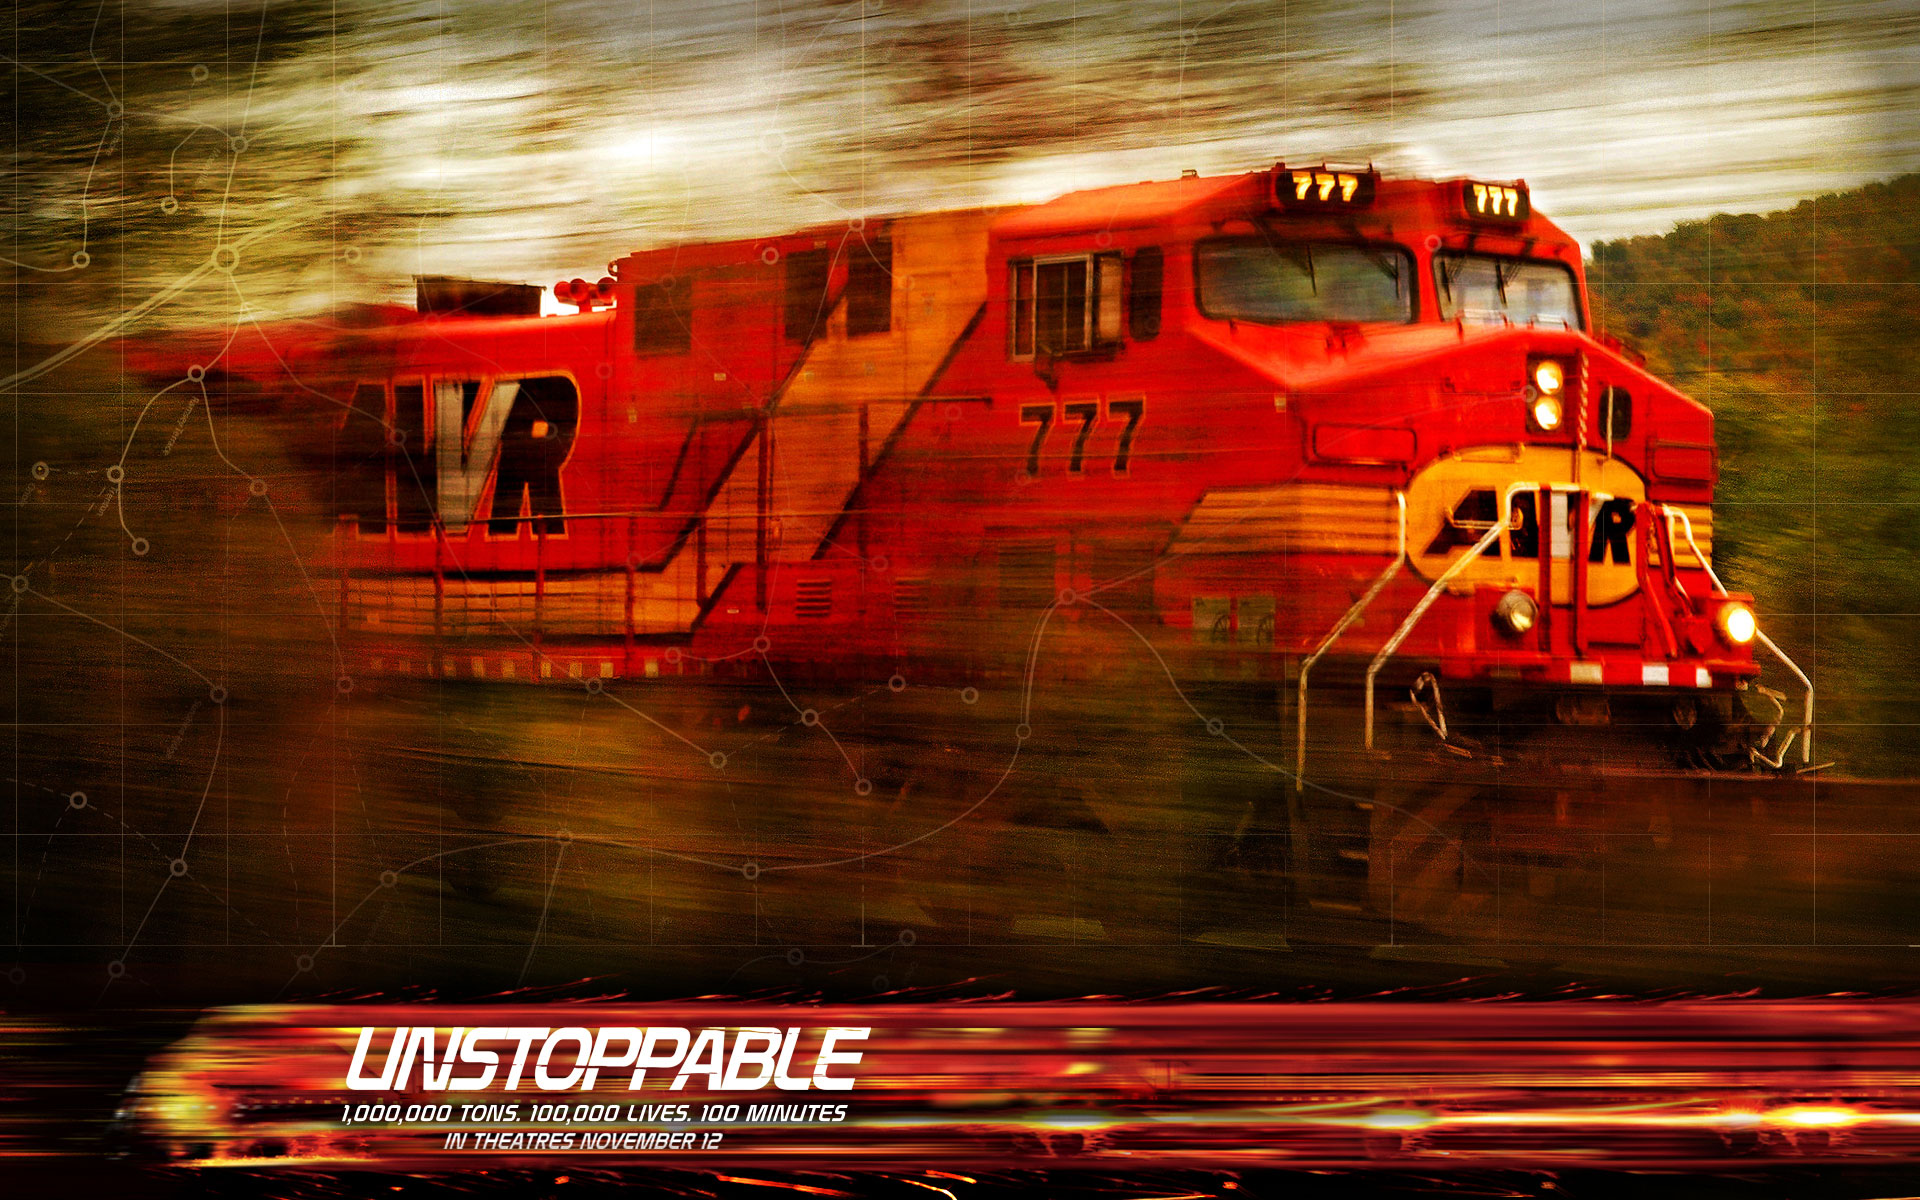 Unstoppable HD Wallpaper Background Image 1920x1200 ID 1920x1200